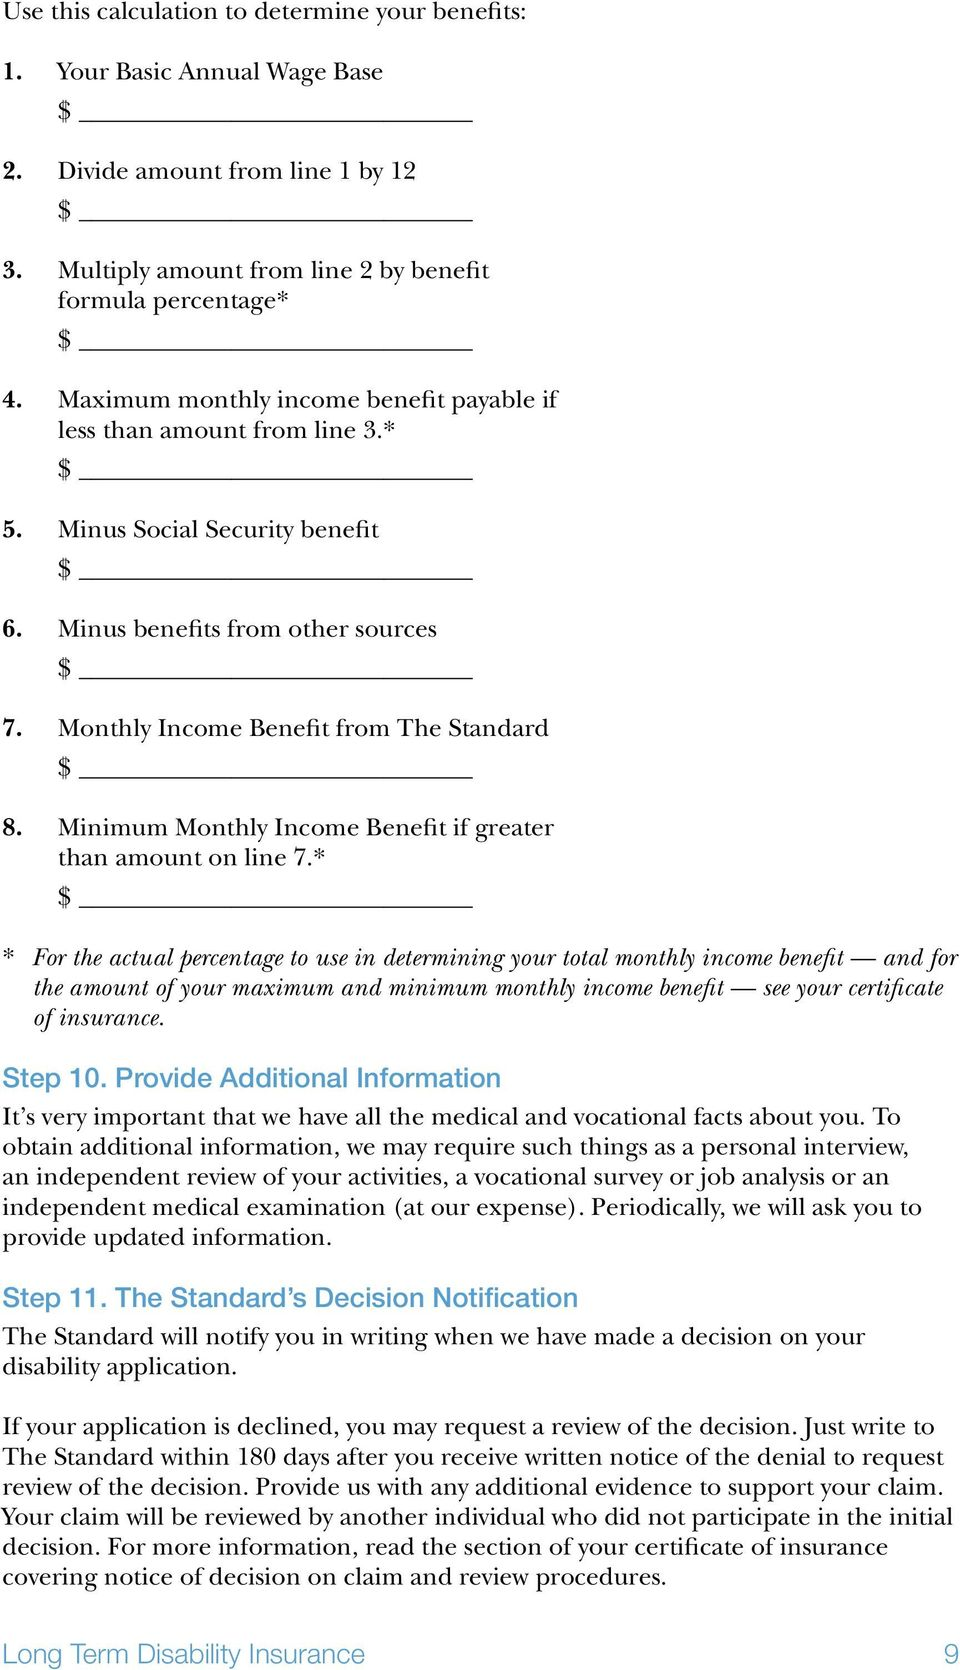 Minimum Monthly Income Benefit if greater than amount on line 7.